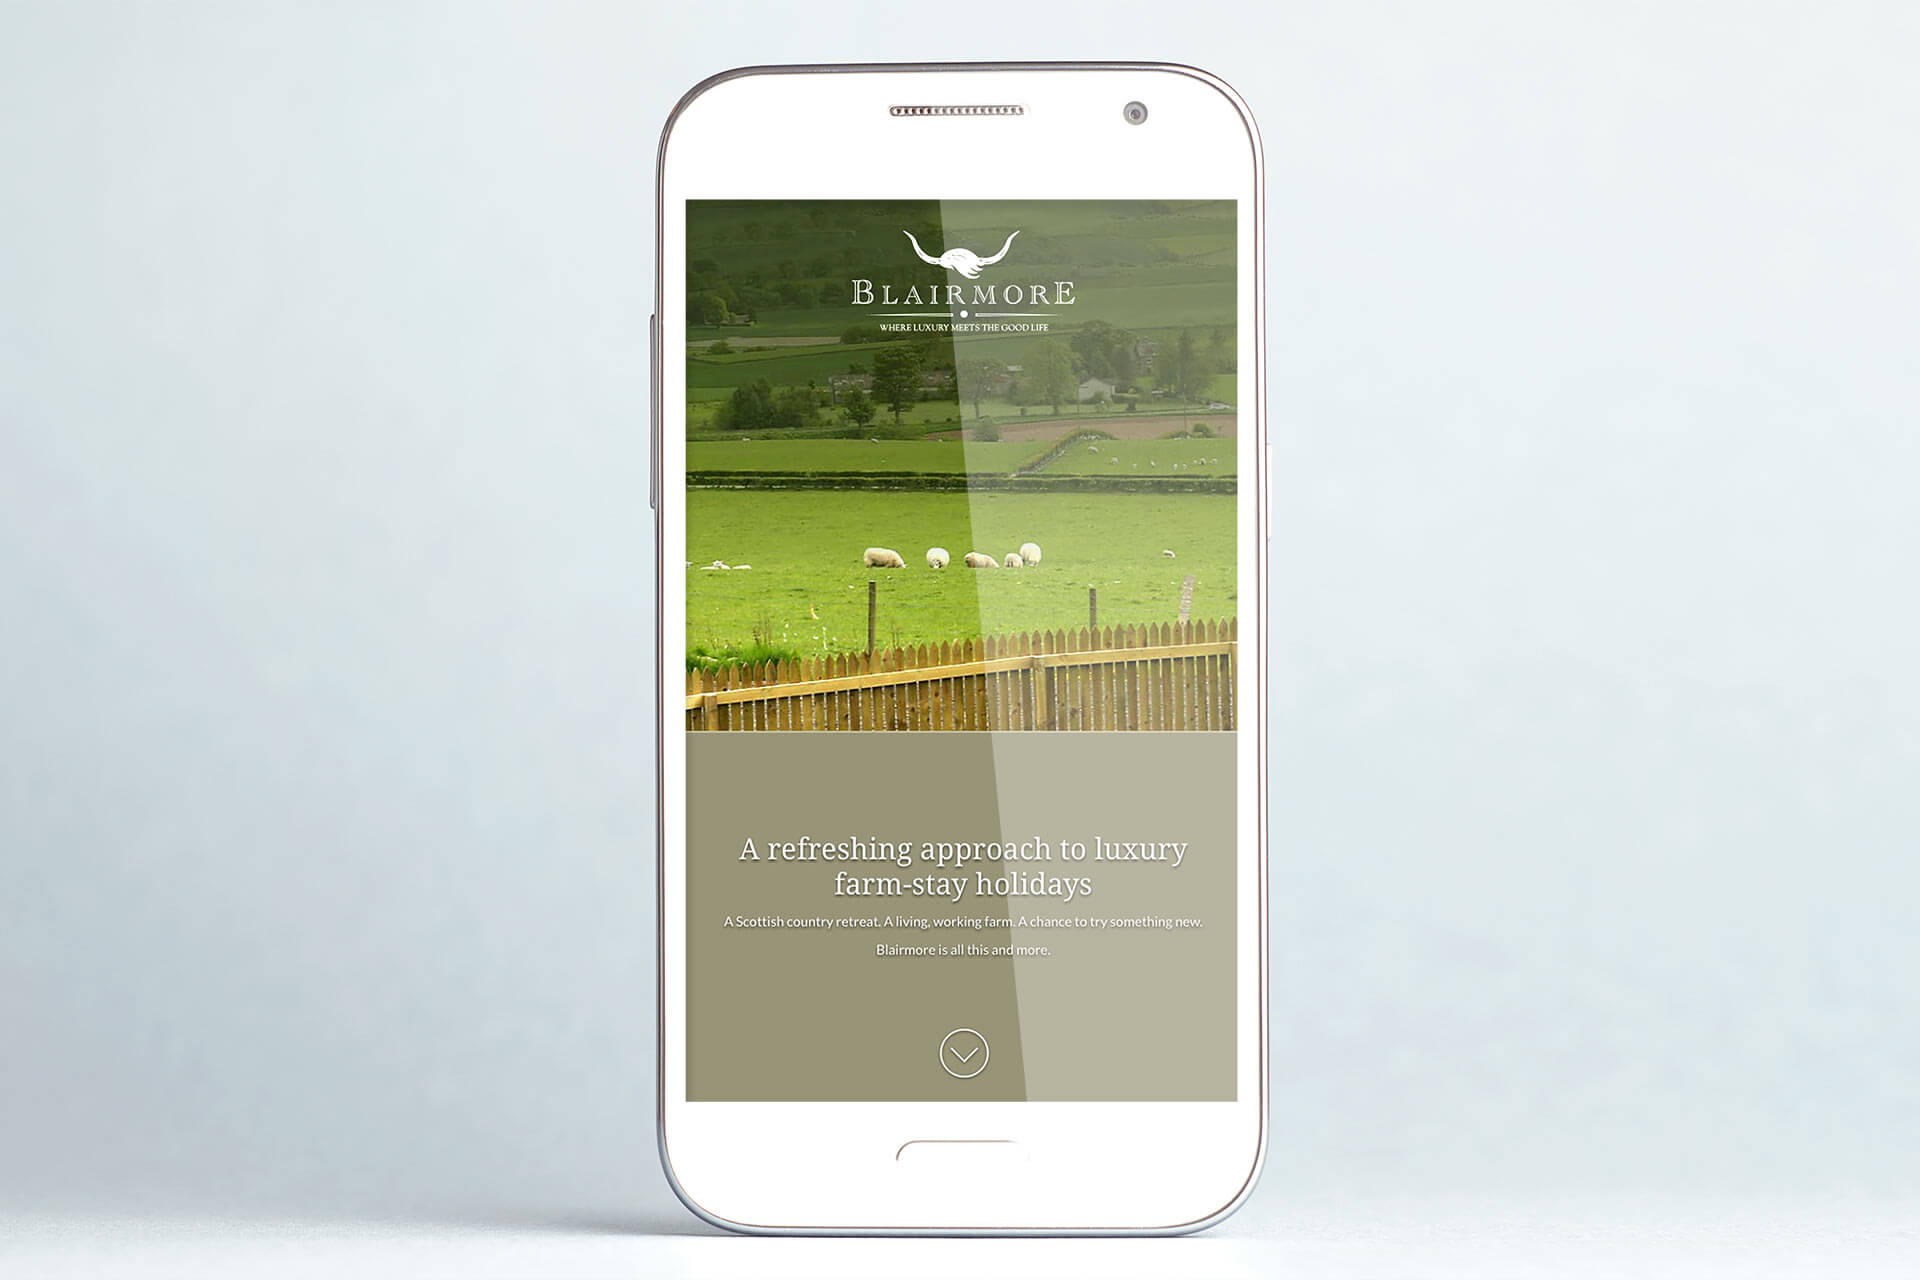 blairmore landing page on smartphone